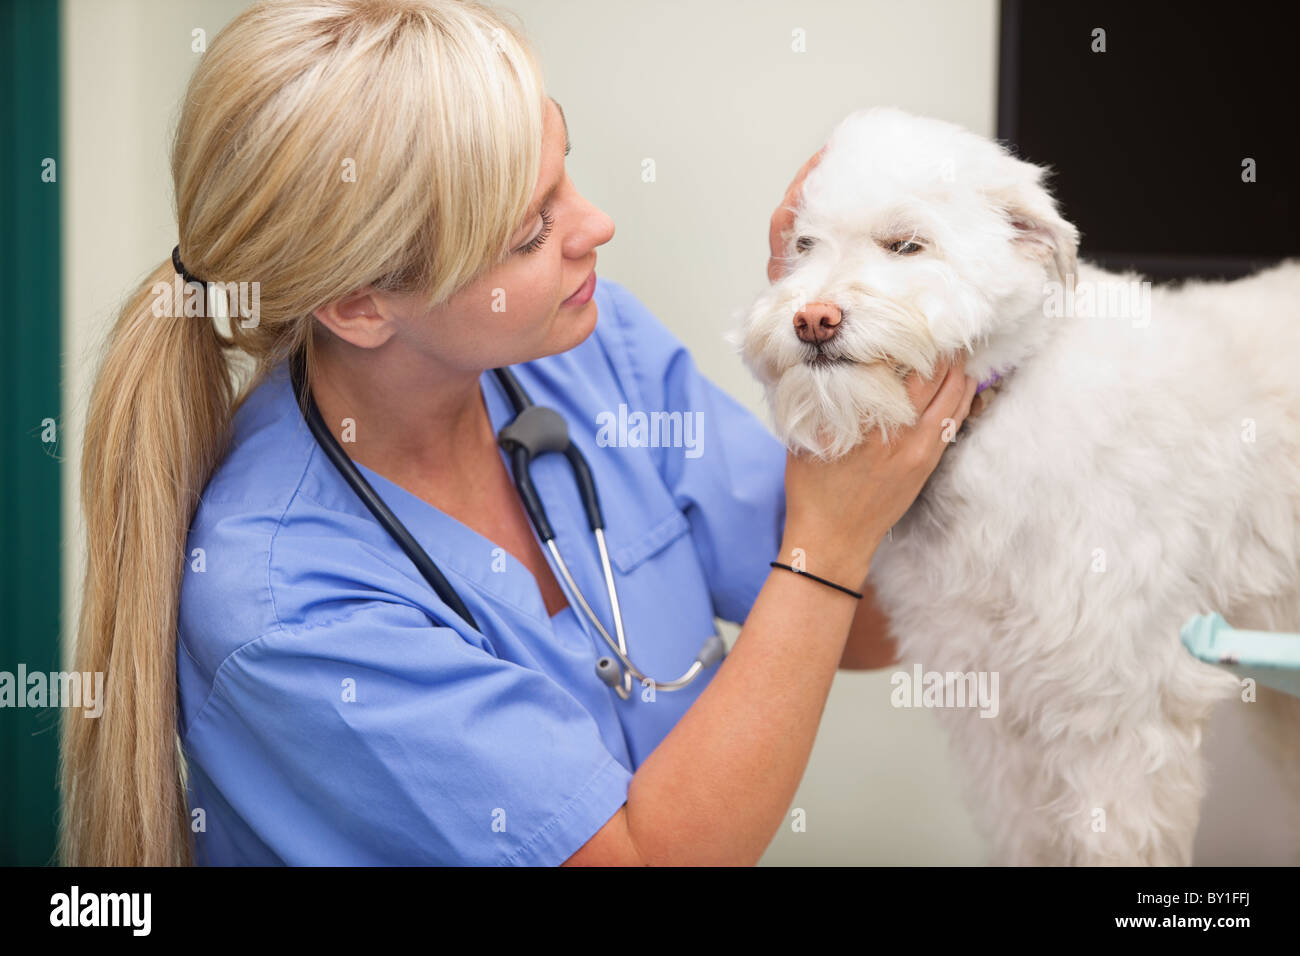 Close-up of blond female veterinarian examining dog - Stock Image